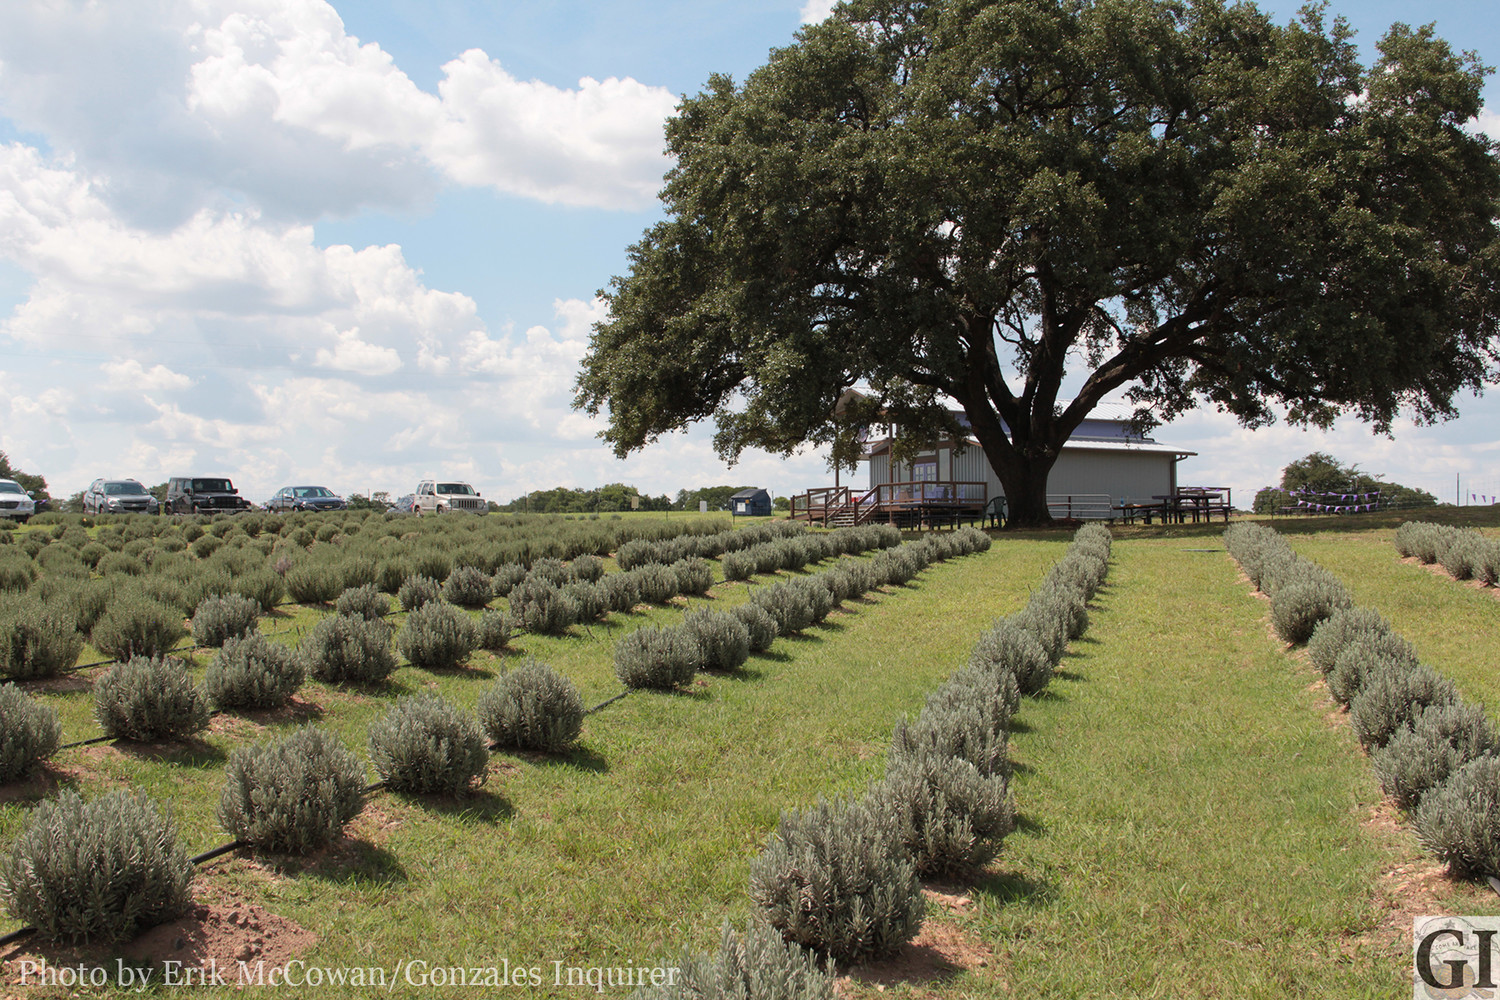 Just north of I-10 and east of U.S. 183 sits Luling Lavender Fields, where a local family is hoping to establish a new market for these sweet-smelling purple buds.